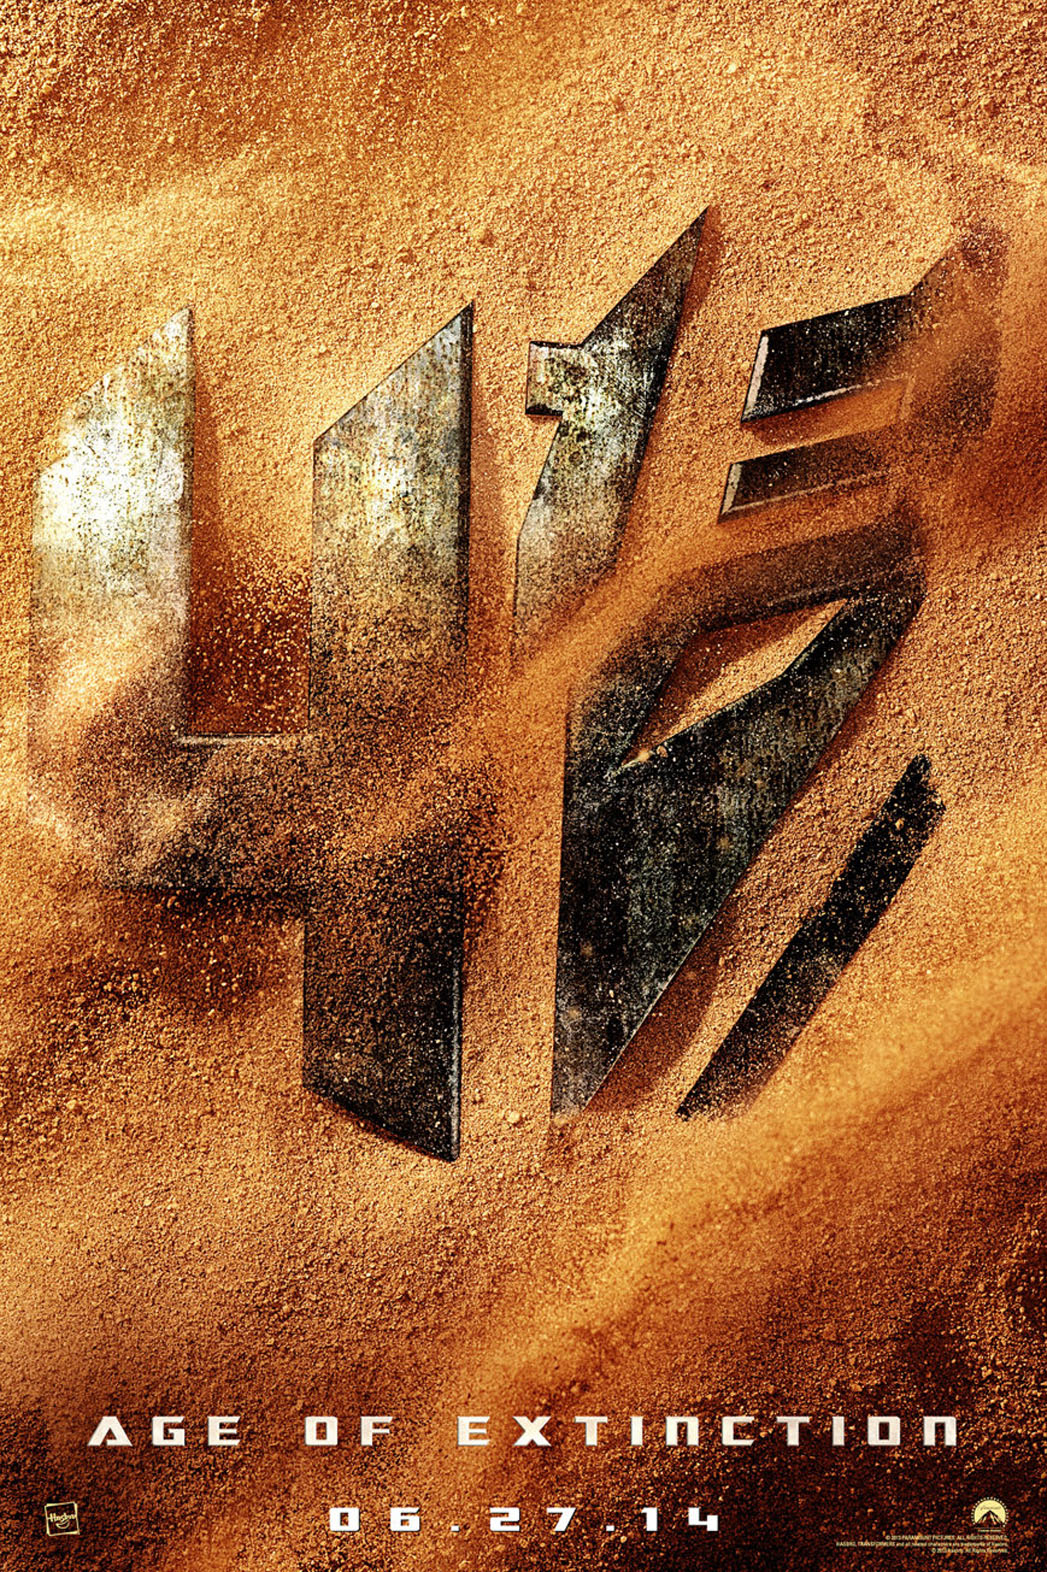 Transformers 4 Age of Extinction Poster Art - P 2013